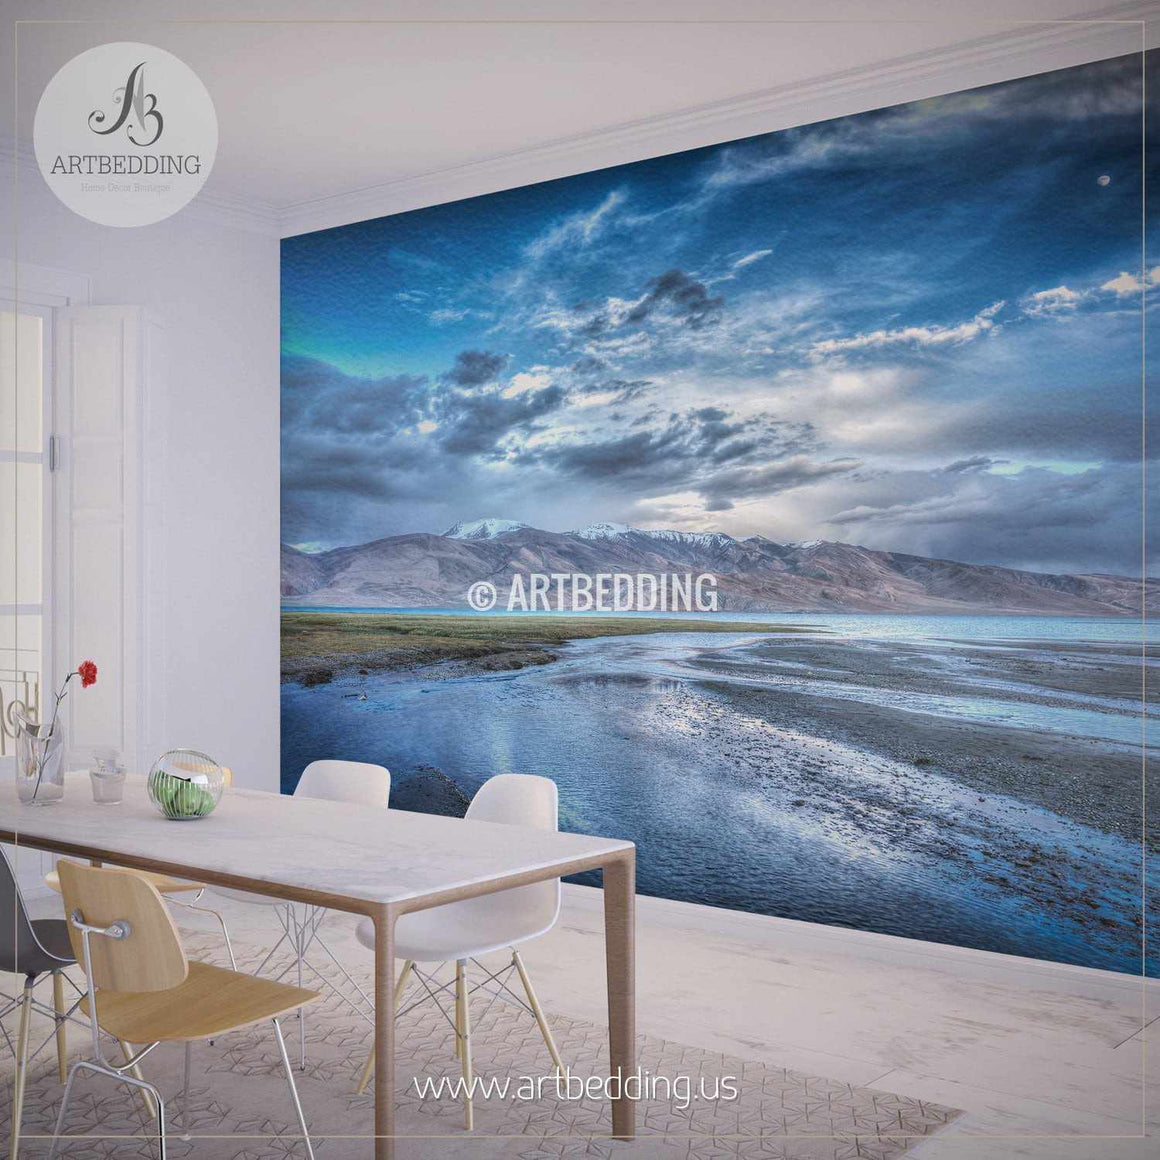 Beautiful Mountain Landscape Wall Mural, Self Adhesive Peel & Stick Photo Mural, Nature photo mural home decor wall mural